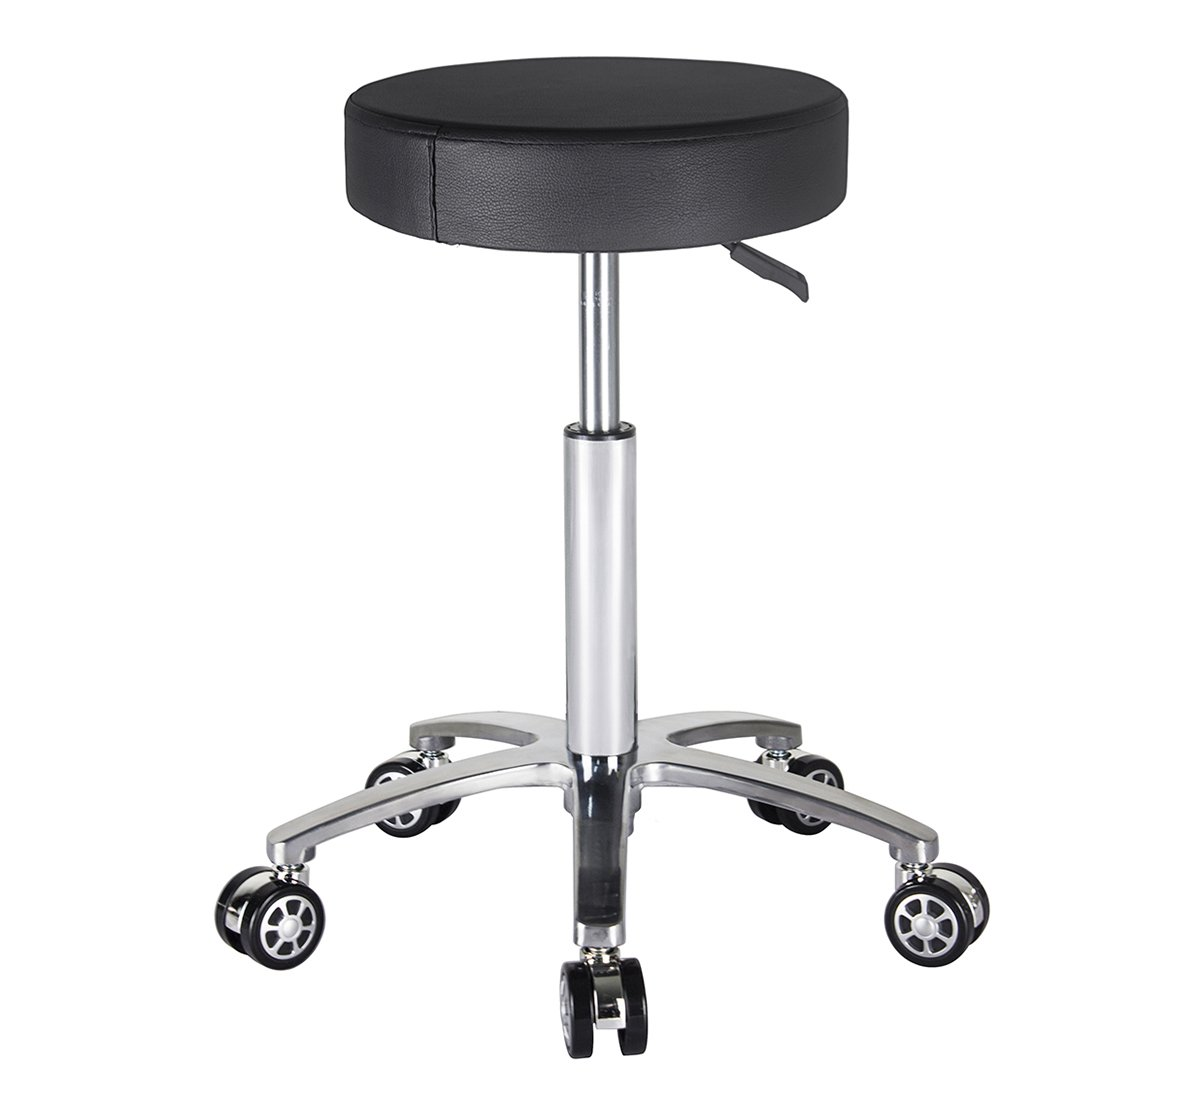 Rolling Swivel Stool Chair for Office Medical Salon Tattoo Massage,Adjustable Height Hydraulic Stool with Wheels (Black) Antlu